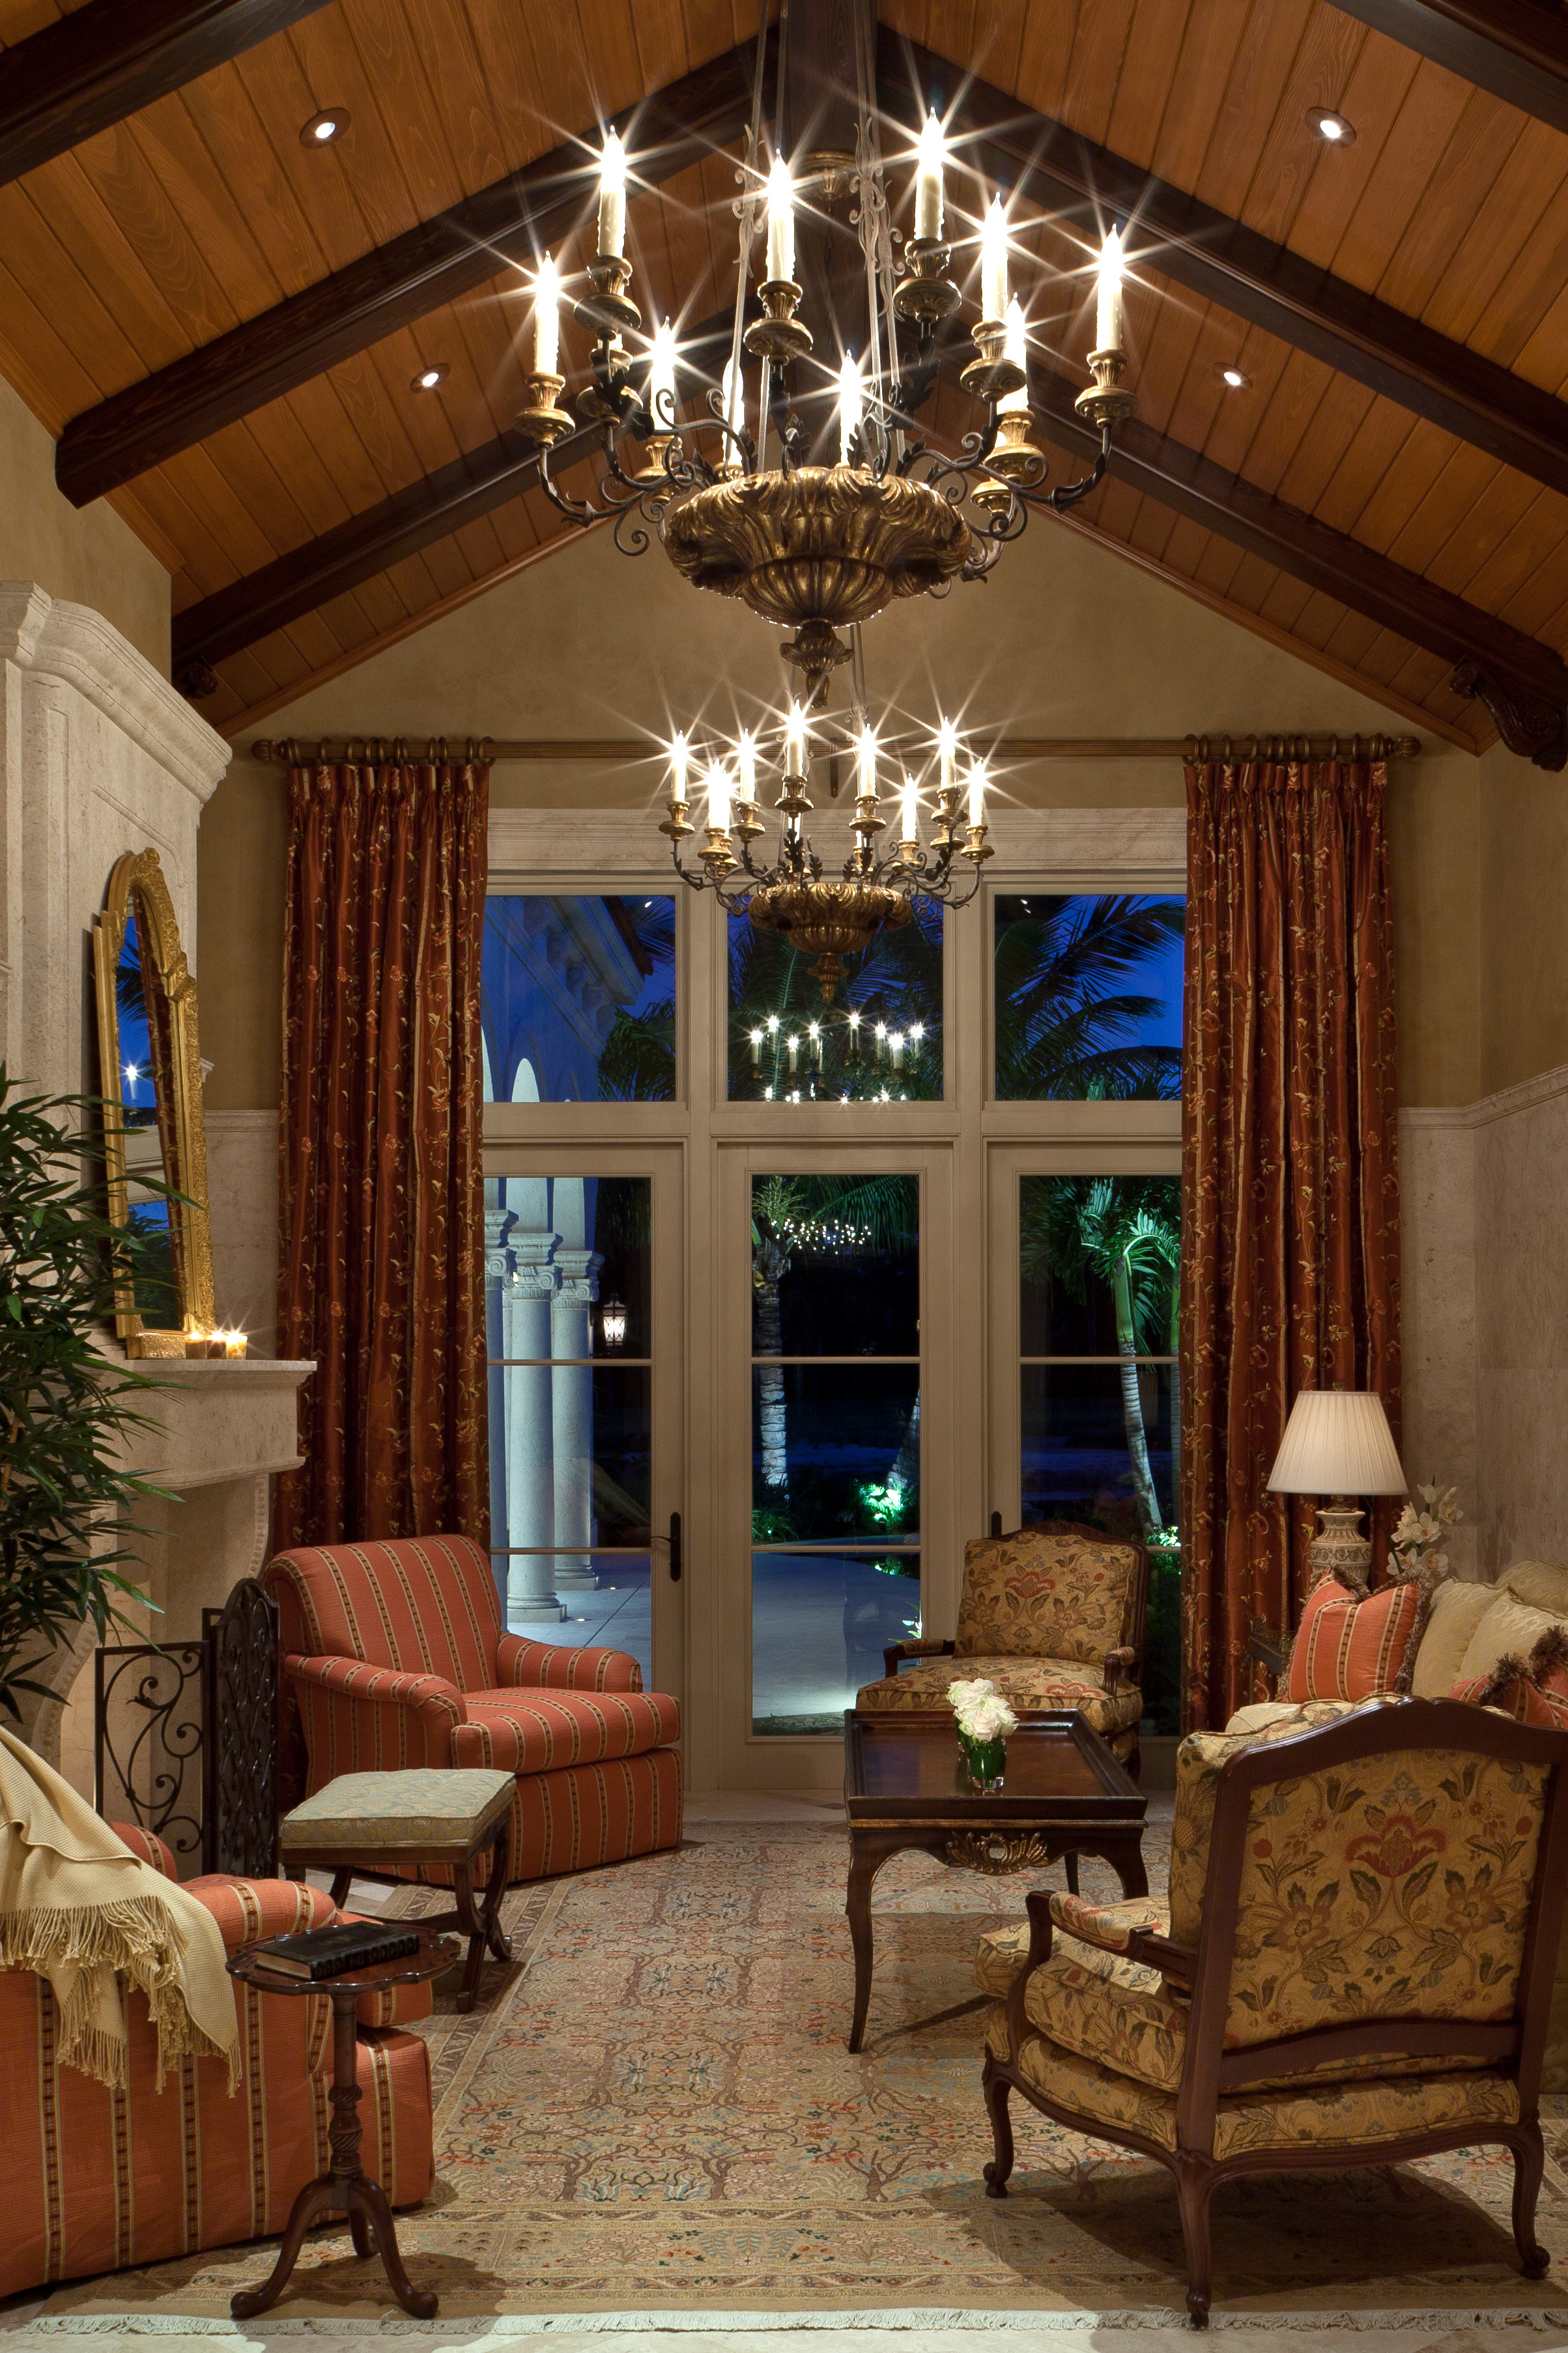 In this warm and welcoming living room, the stone paneled walls and superb custom designed, carved mantelpiece called for precise and innovative detailing, as did the ceiling structure of mahogany beams and cypress panels.